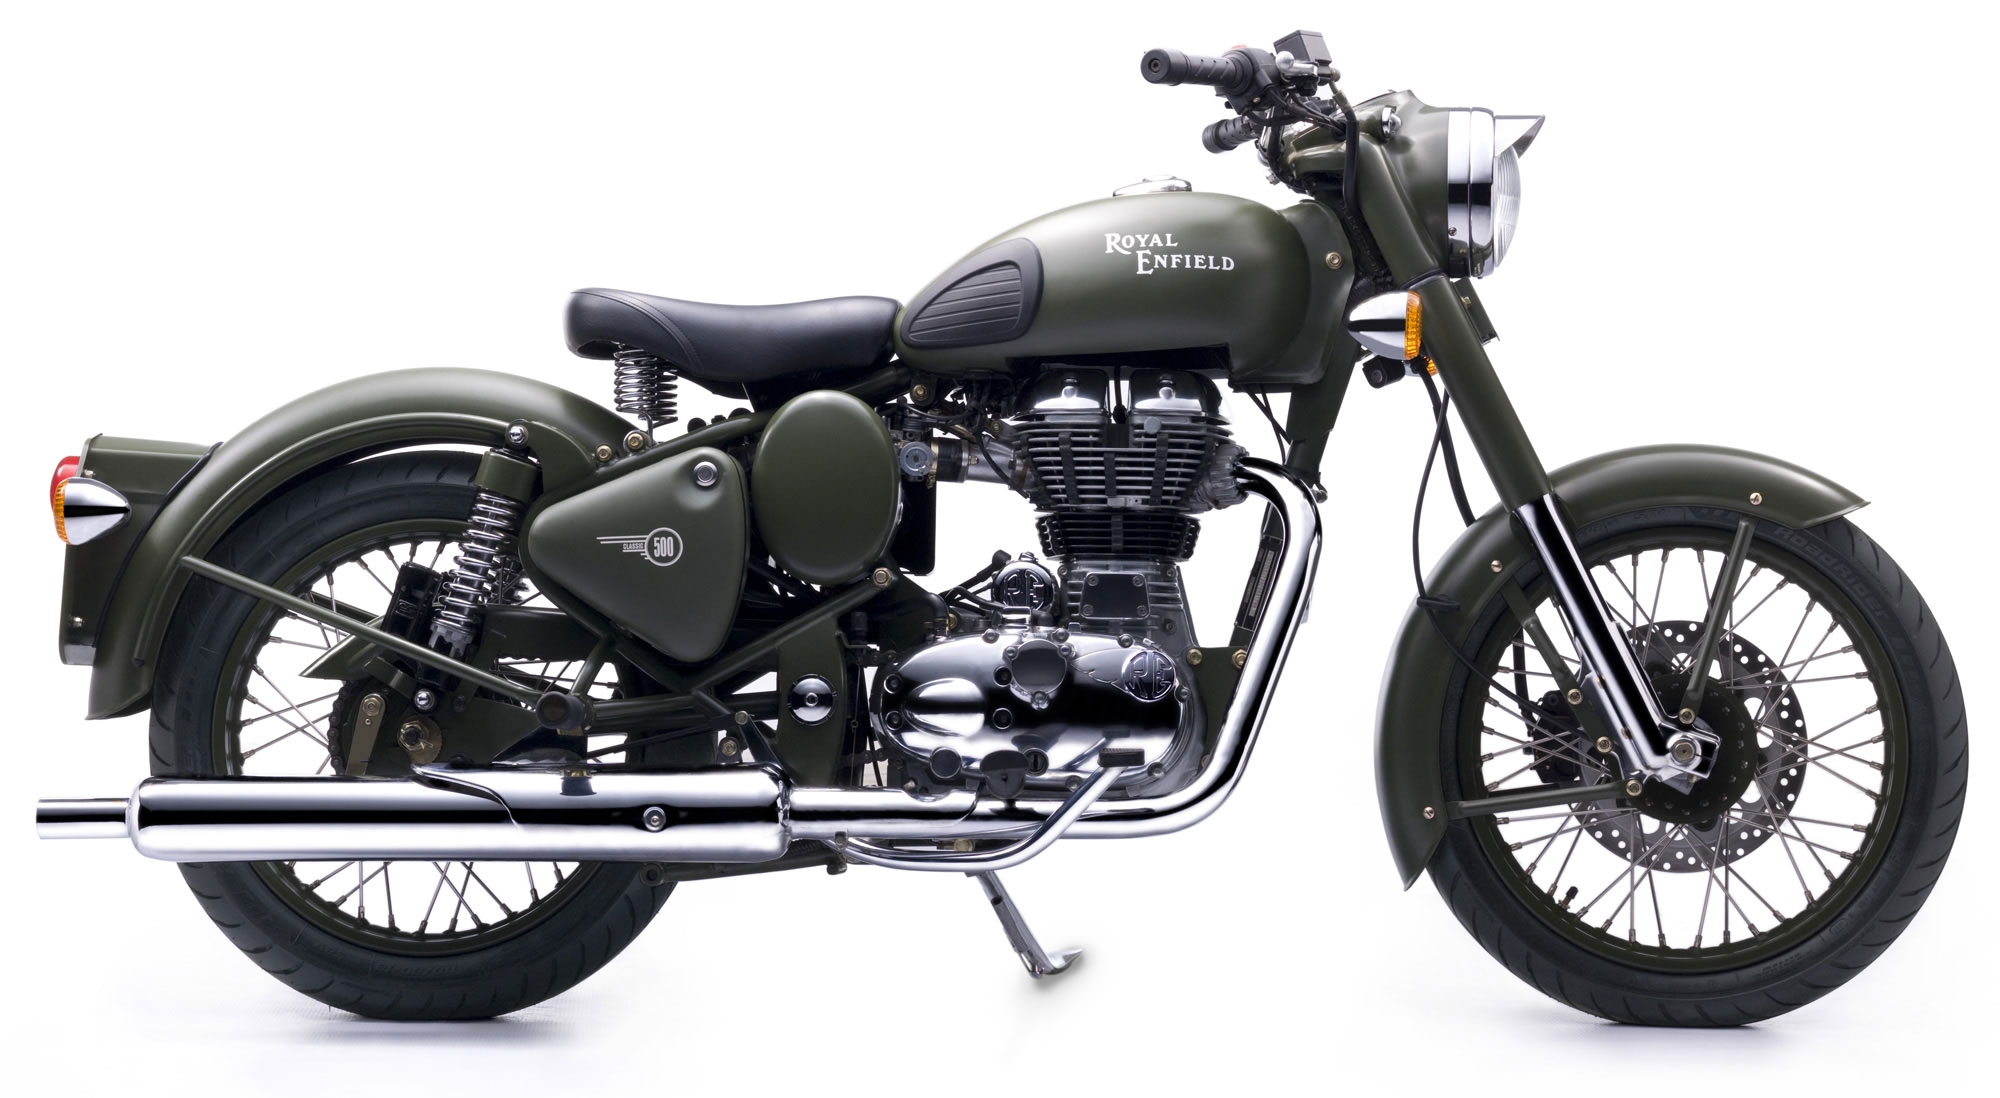 Royal Enfield Bullet 500 Army 1999 images #170665